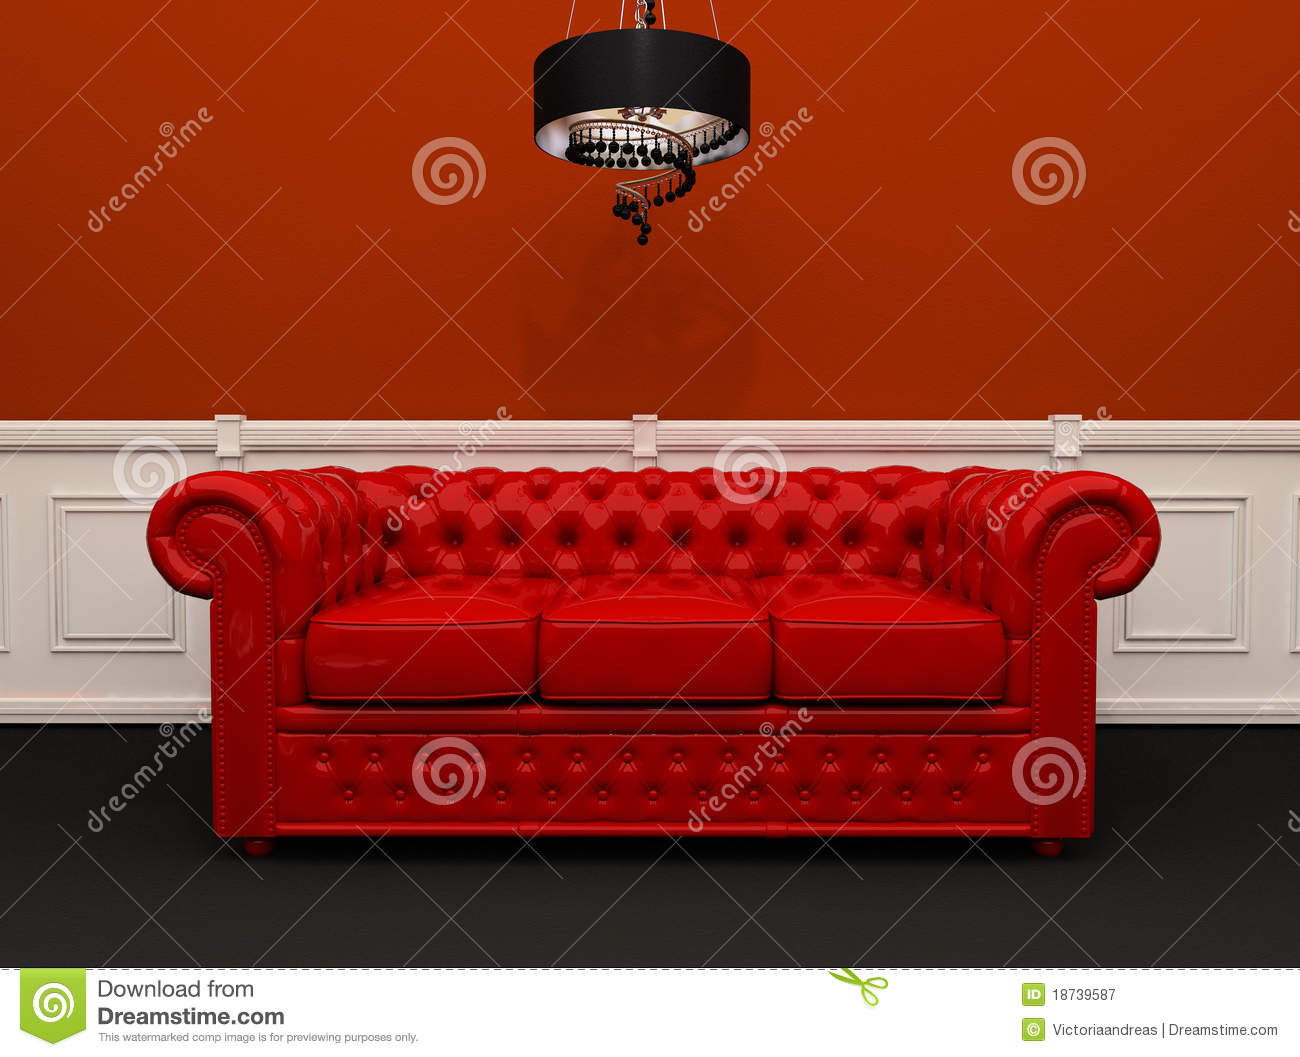 chesterfield leather sofa how to recover pillows red with chandelier interior royalty free ...